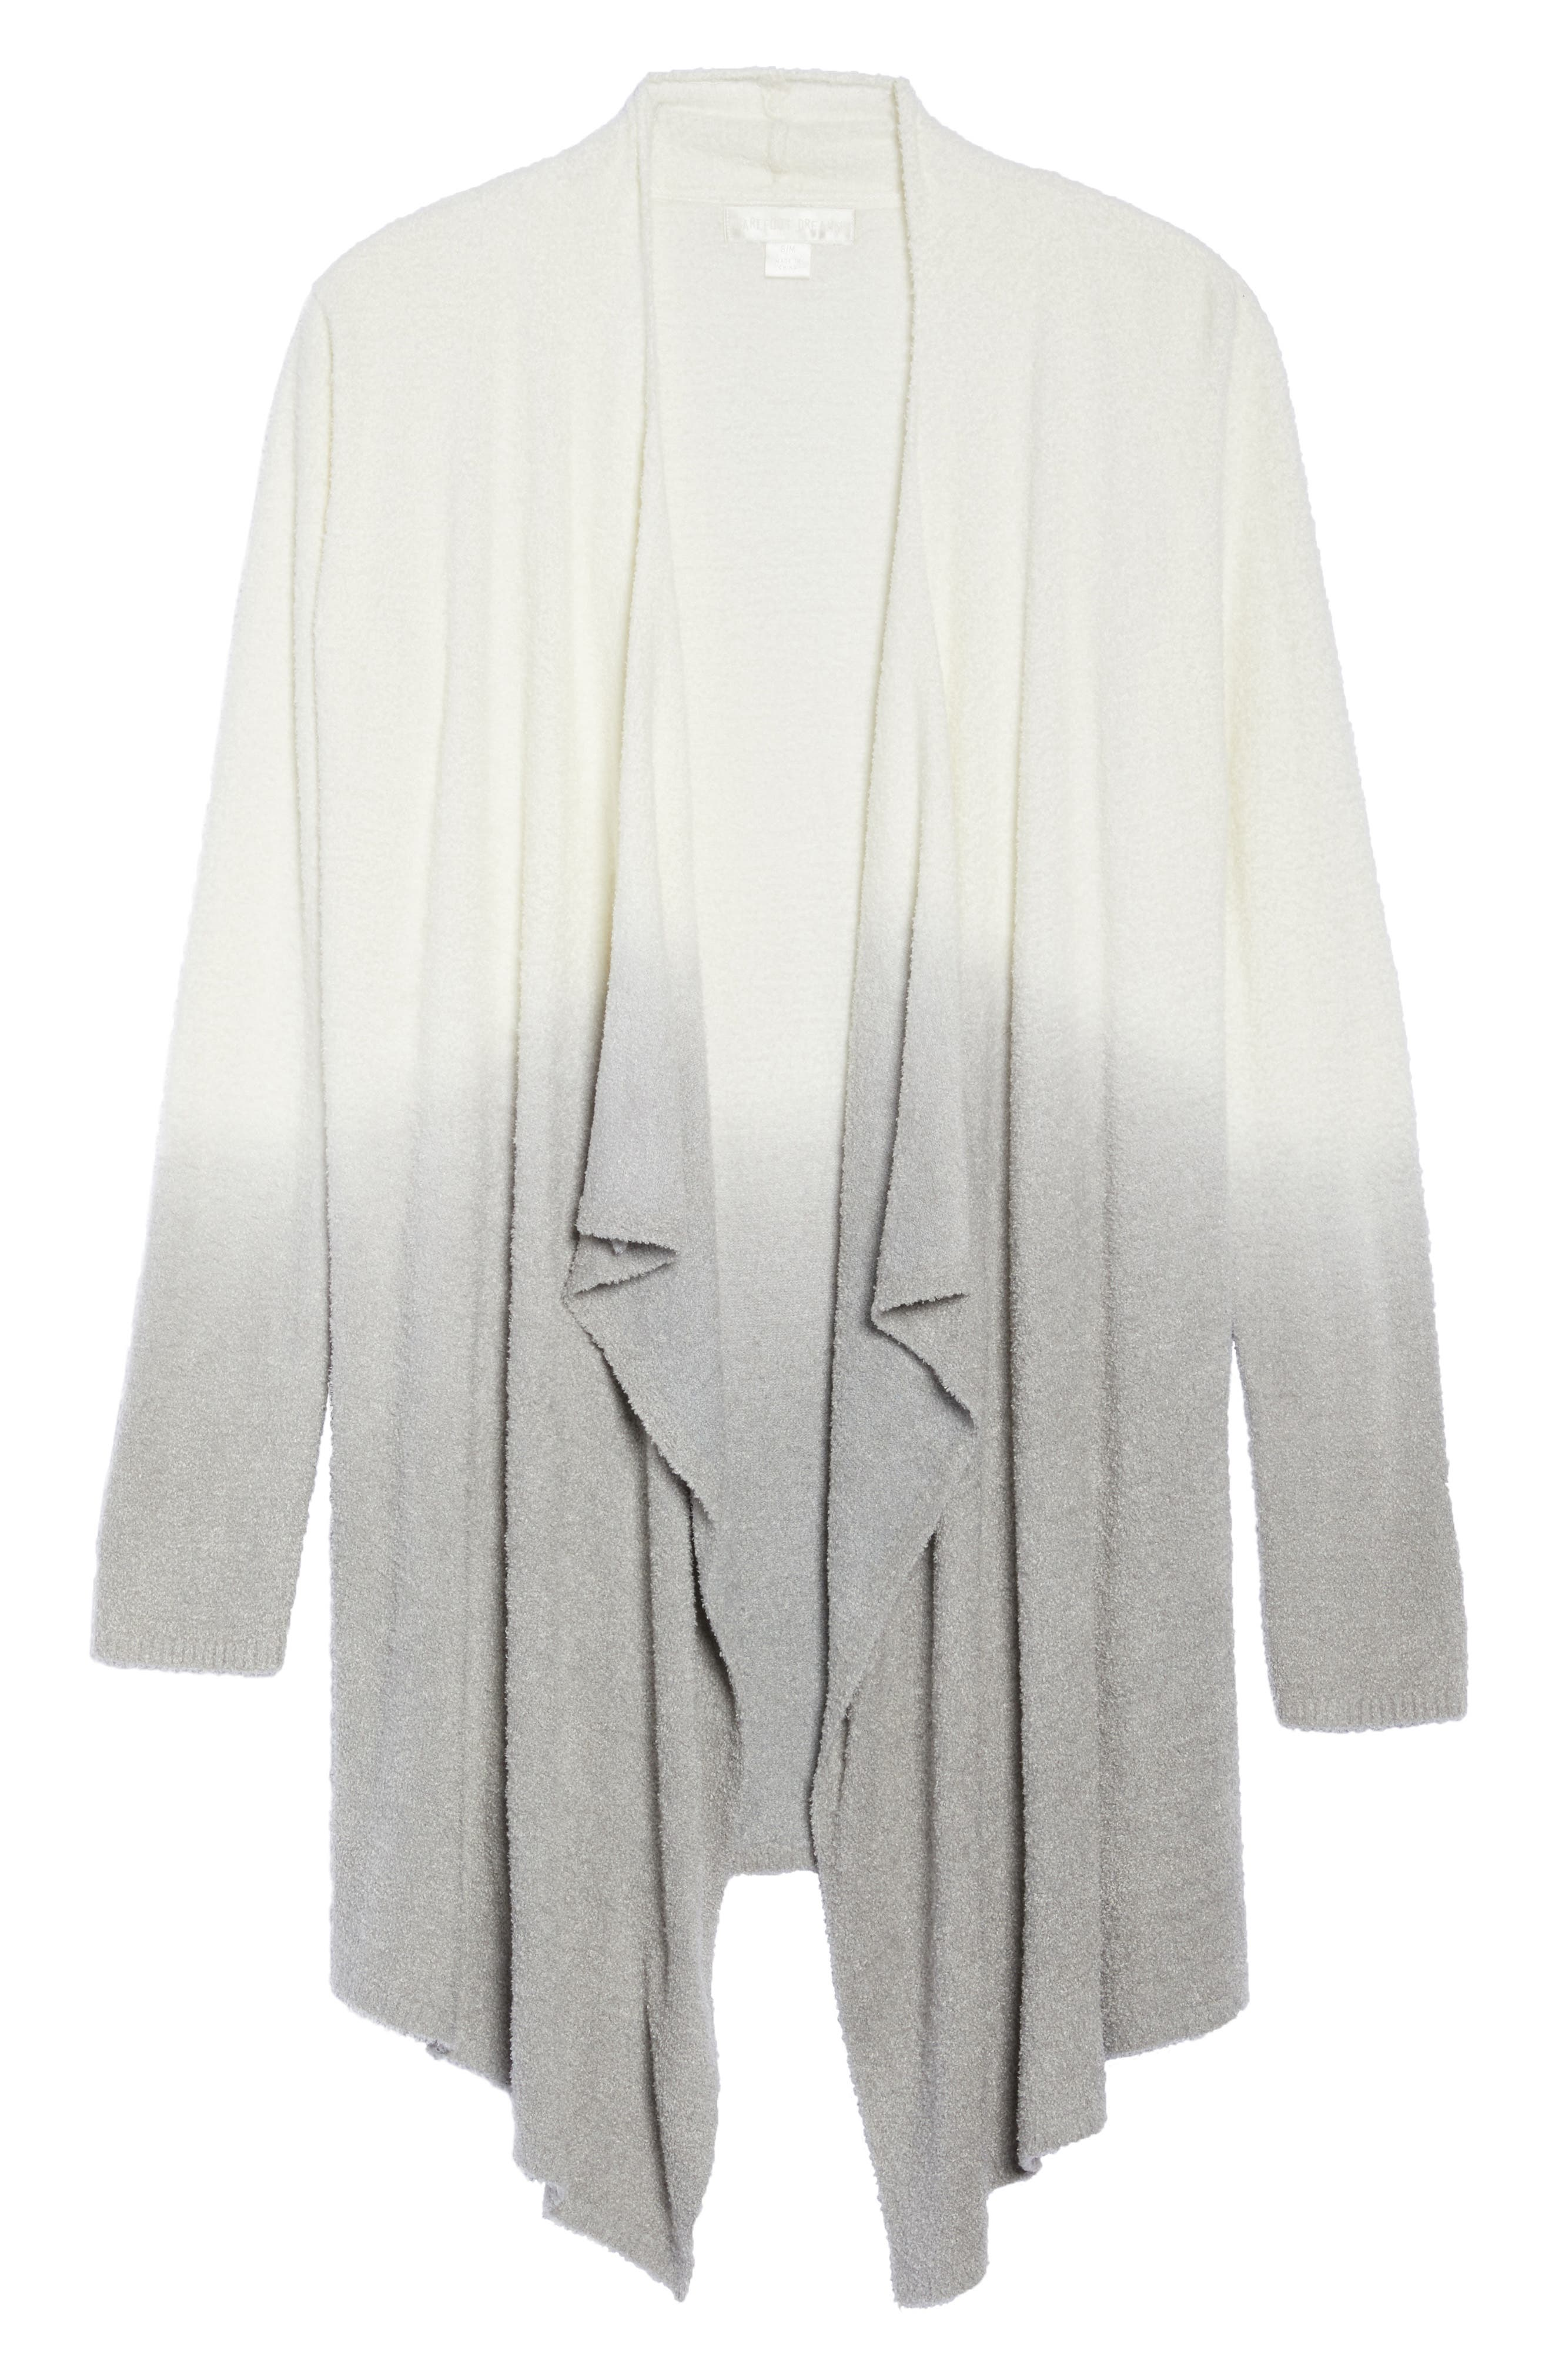 CozyChic Lite<sup>®</sup> Calypso Wrap Cardigan,                             Alternate thumbnail 6, color,                             White/ Pewter Ombre